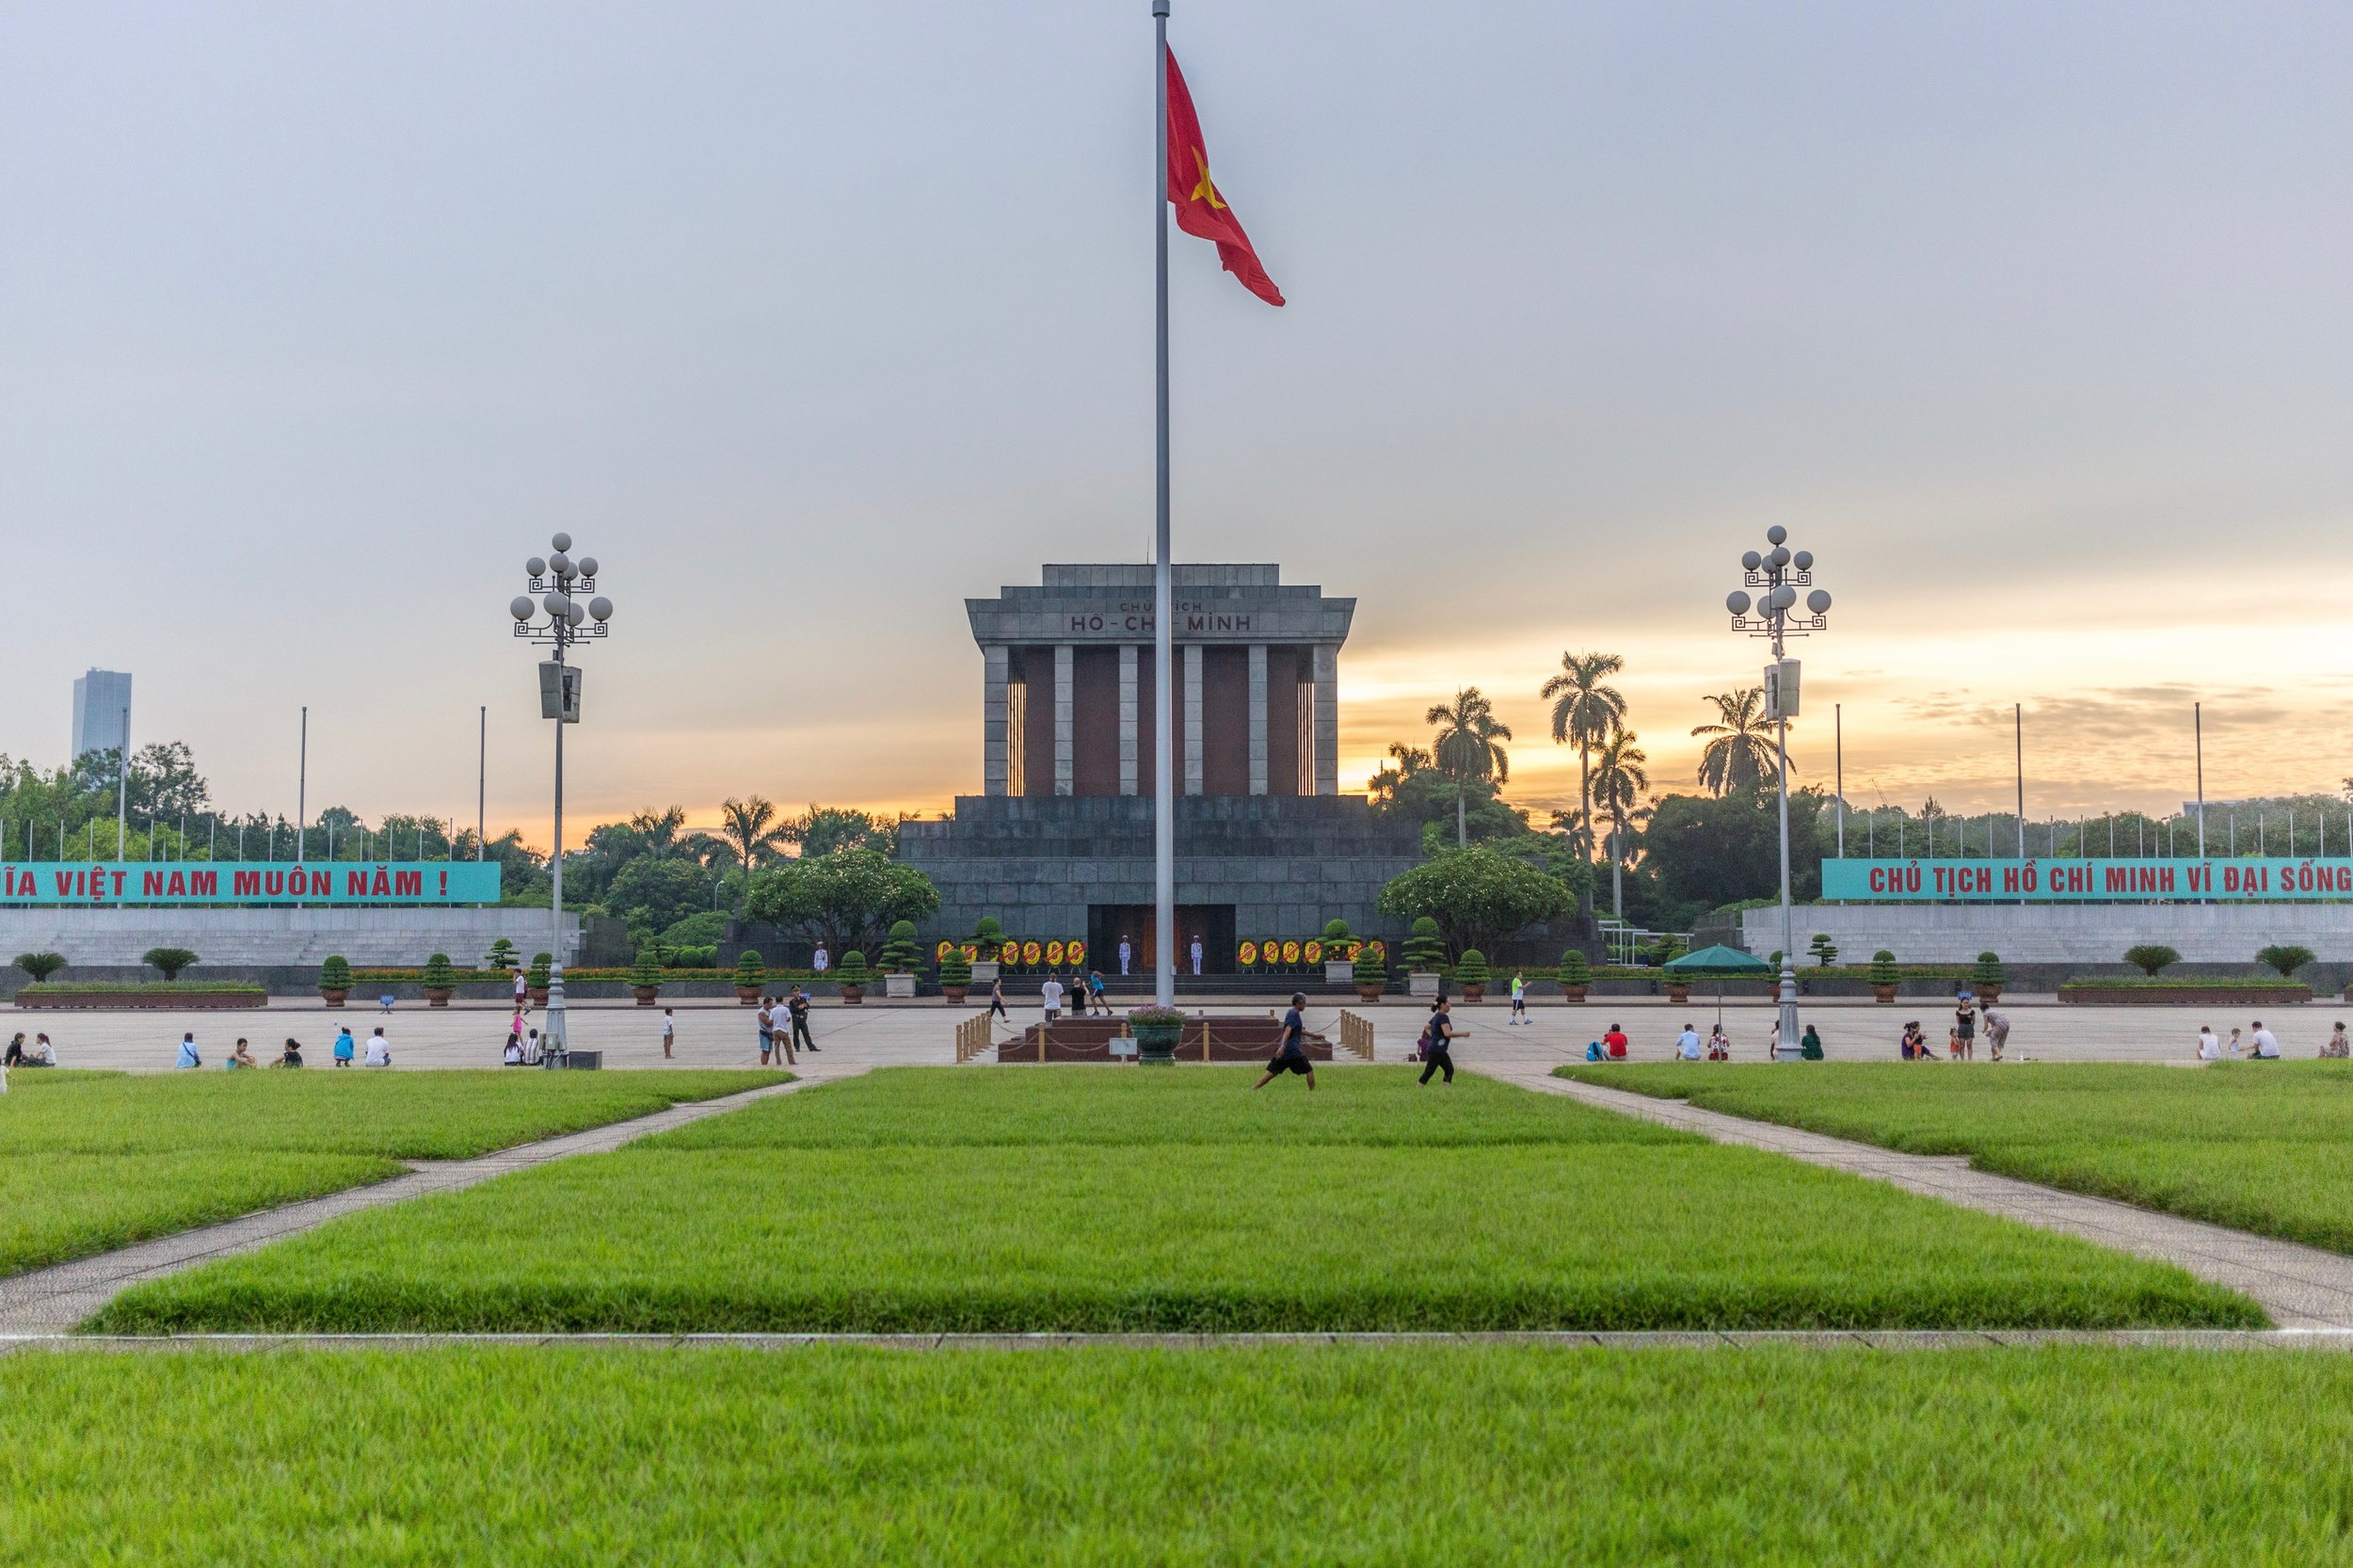 The Ho Chi Minh Museum in Hanoi